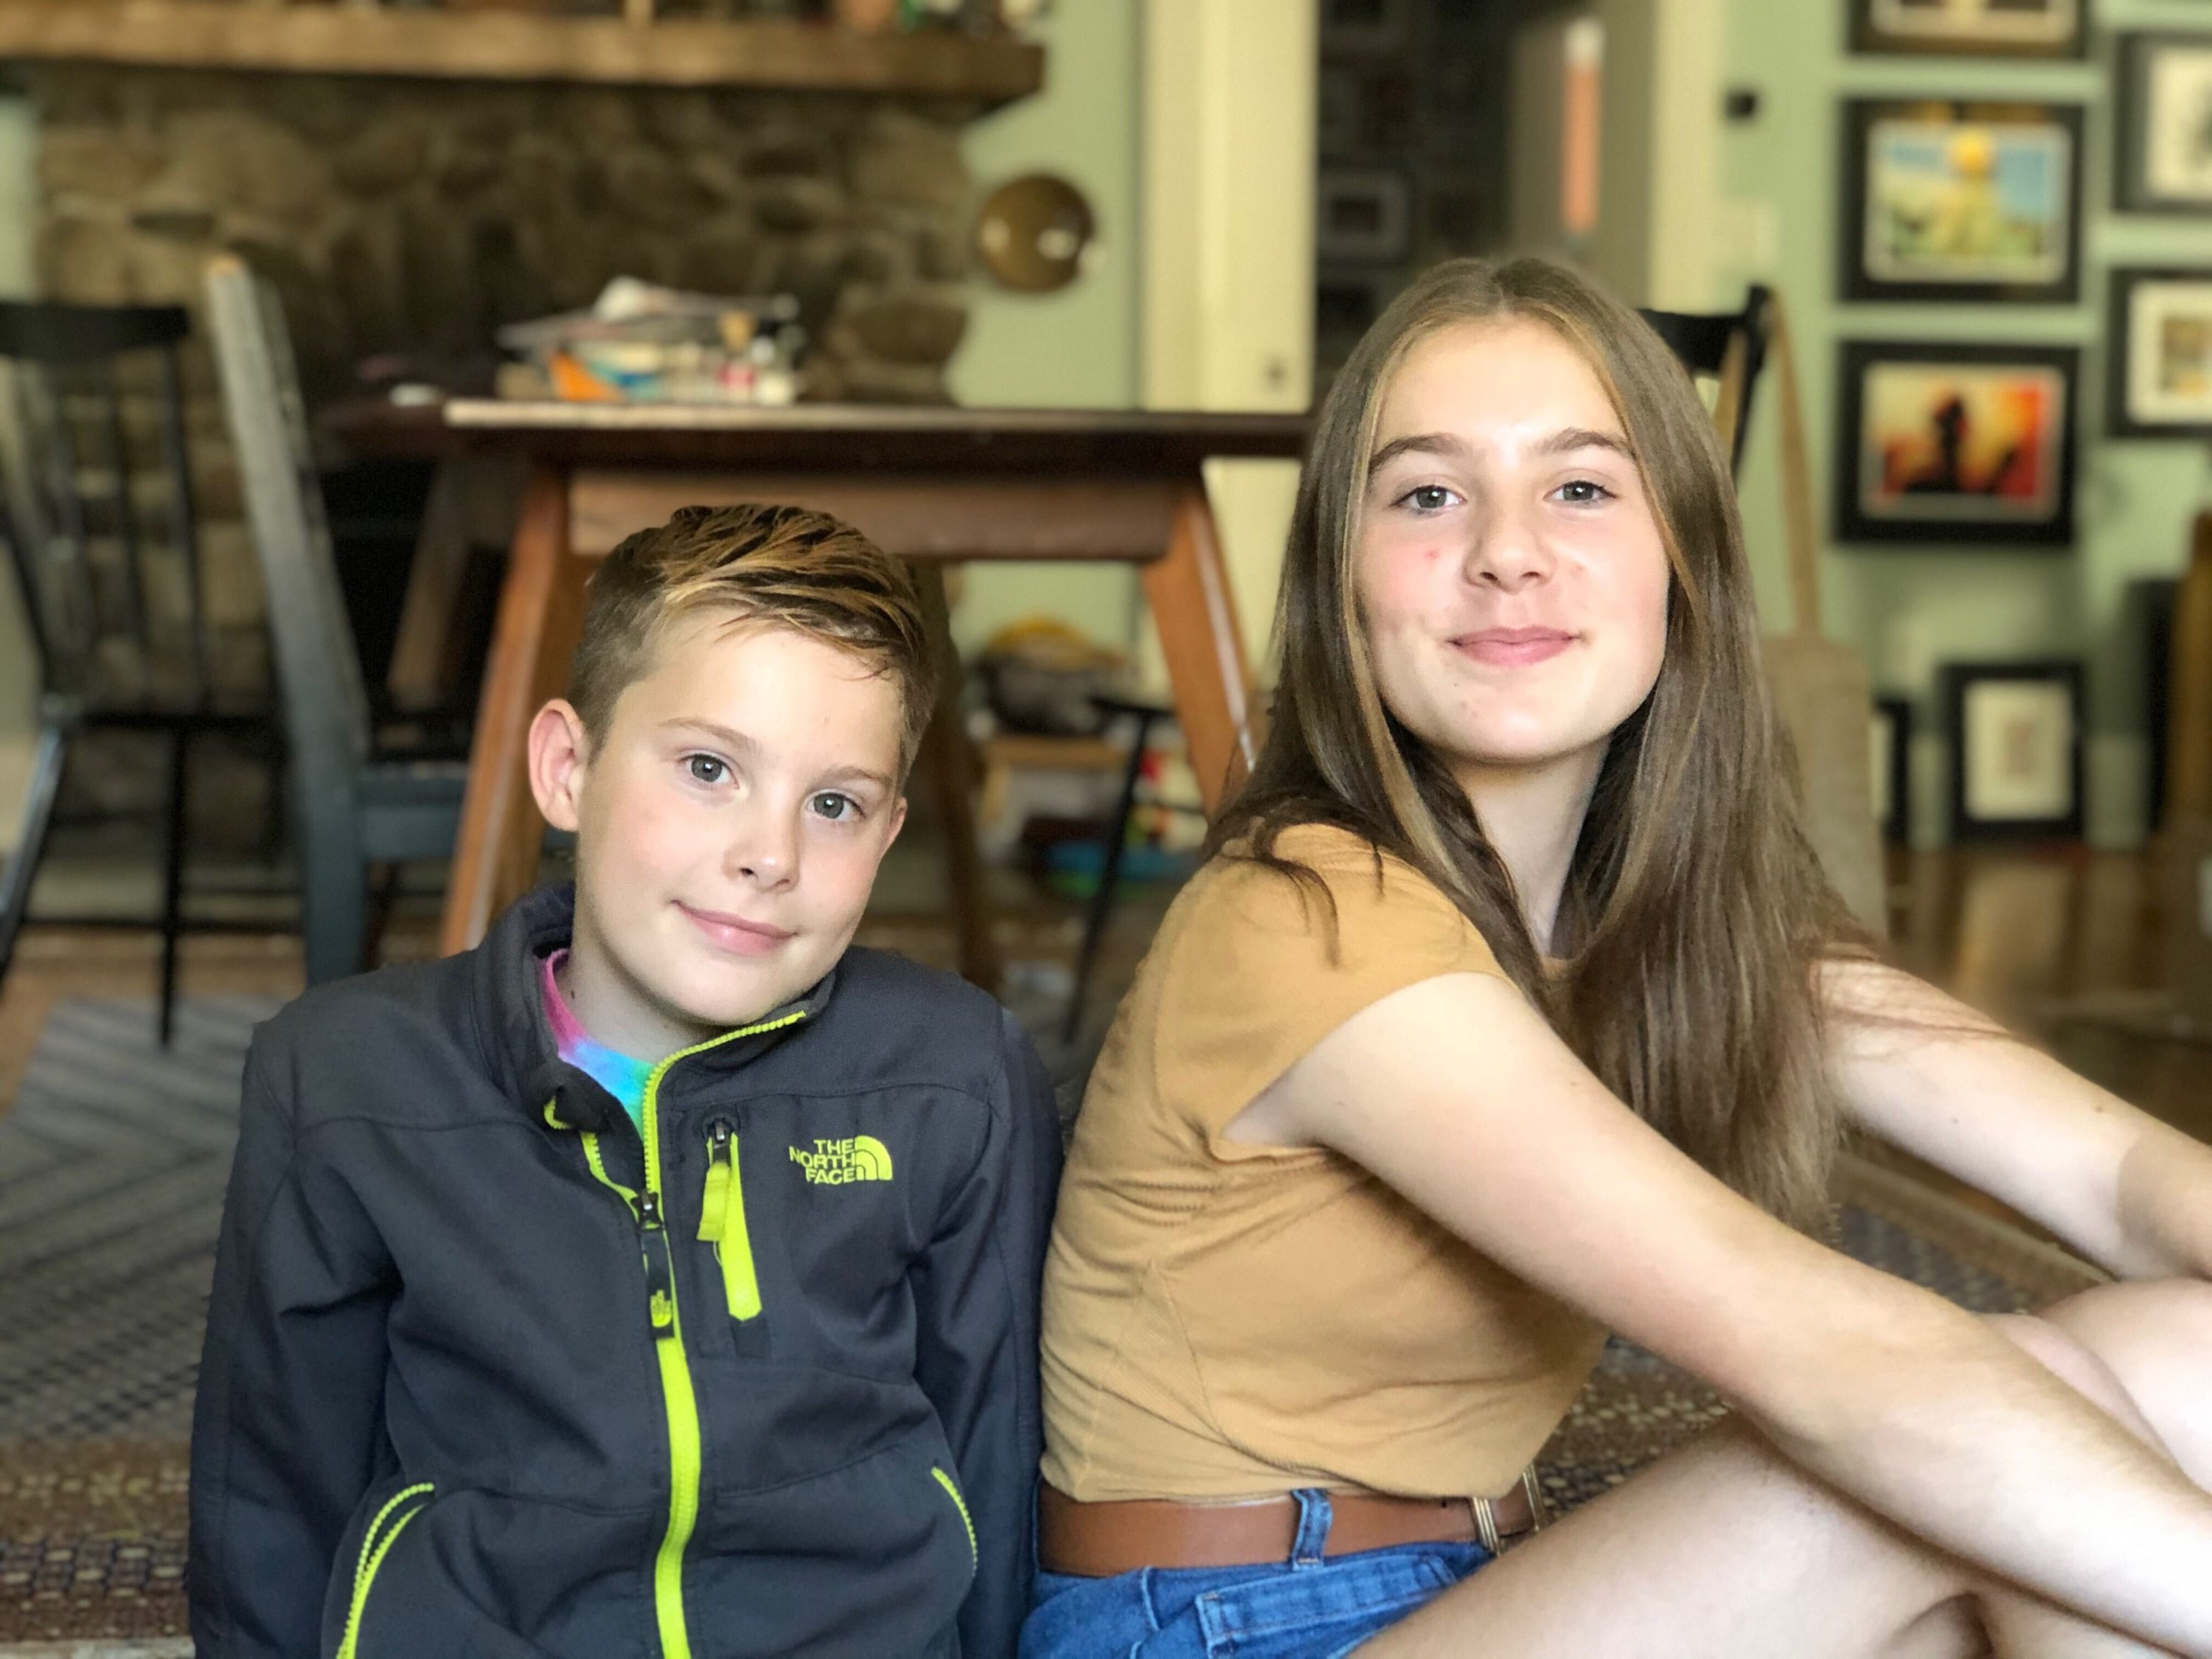 Virginia and Henry Bernstein, rising seventh- and fifth-graders in Franklin Public Schools